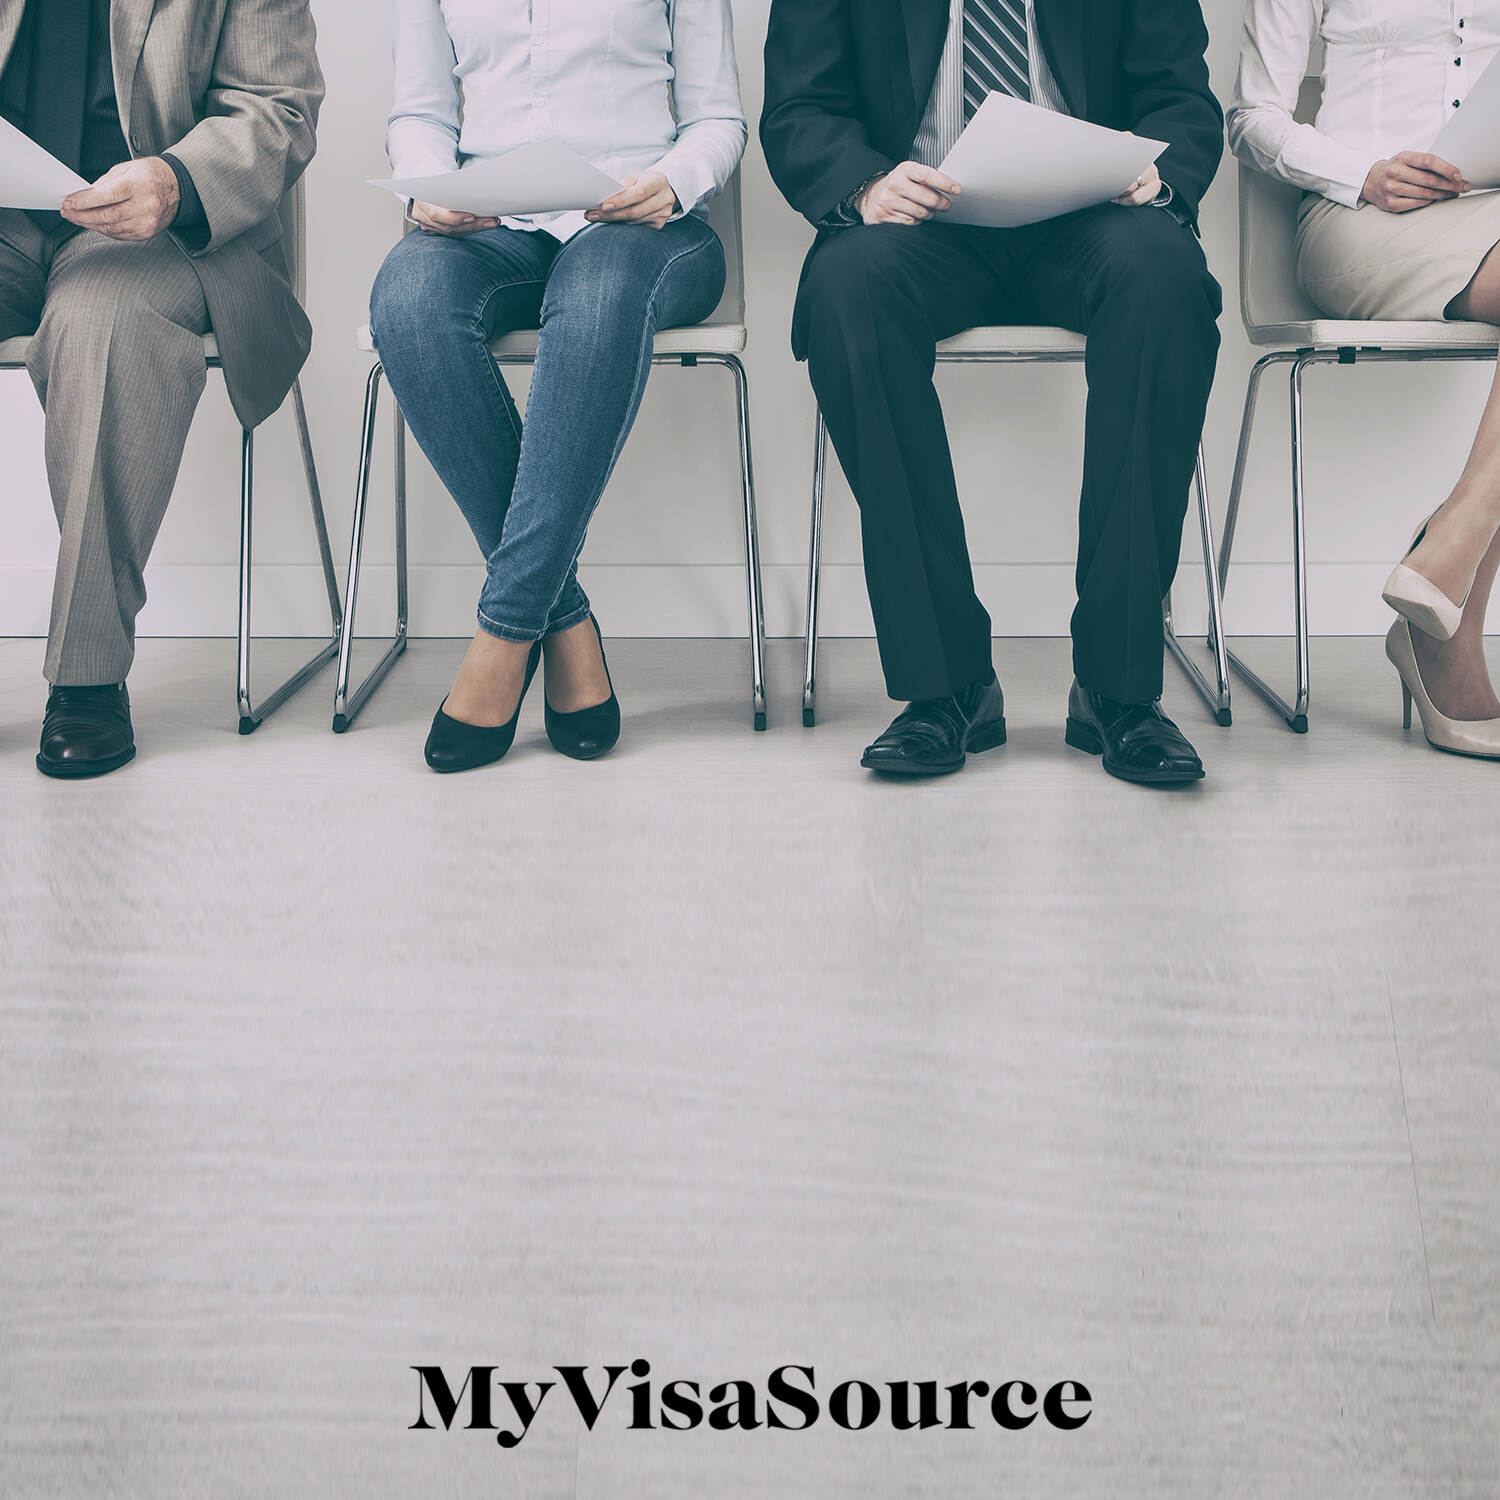 4 people sitting in chairs waiting with resumes in hand my visa source